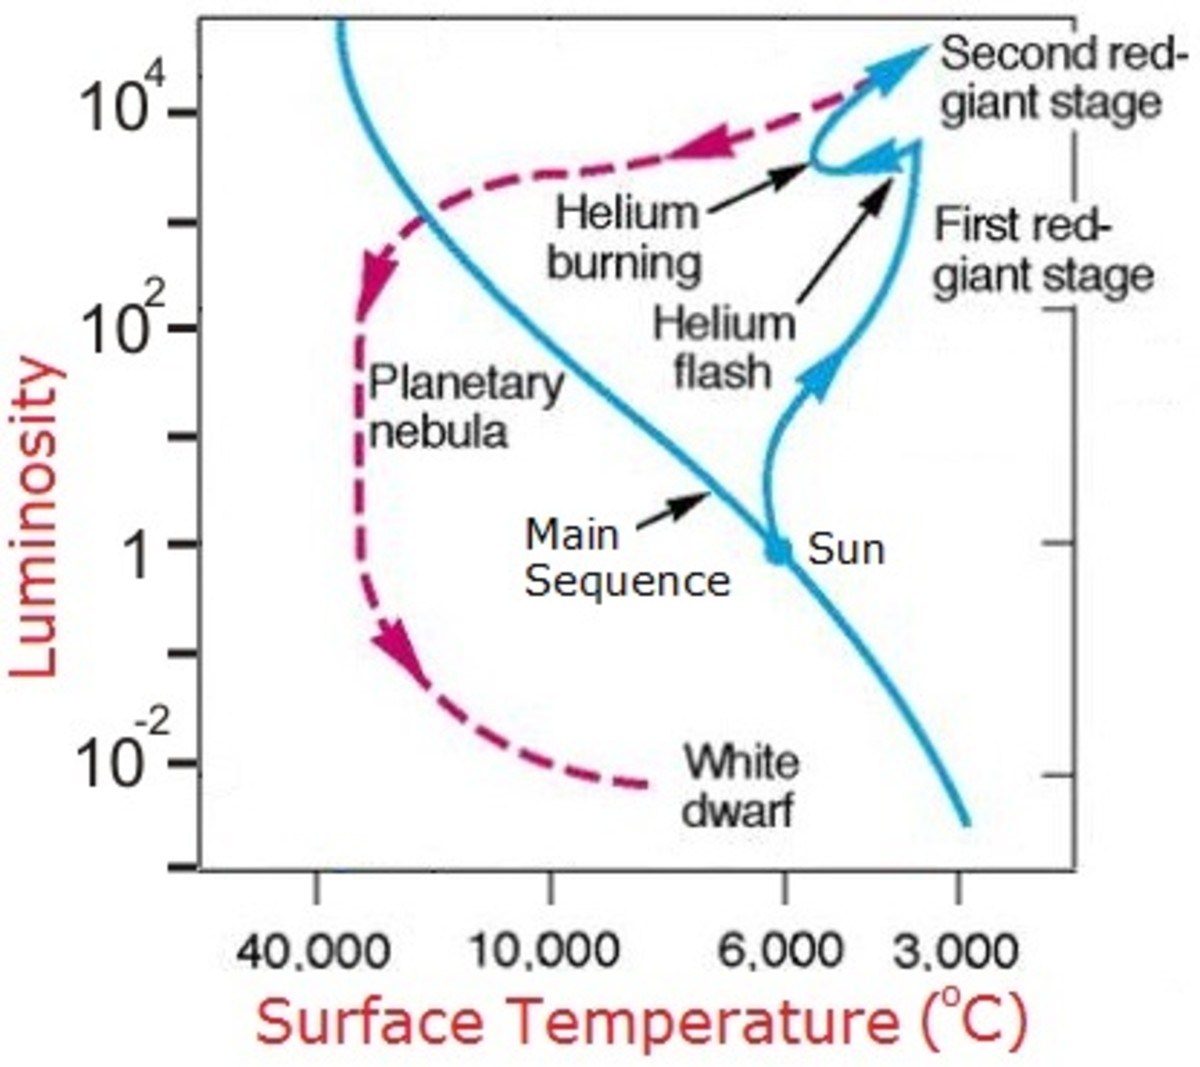 The evolution of the Sun after it leaves the main sequence. Image adapted from a diagram by the: